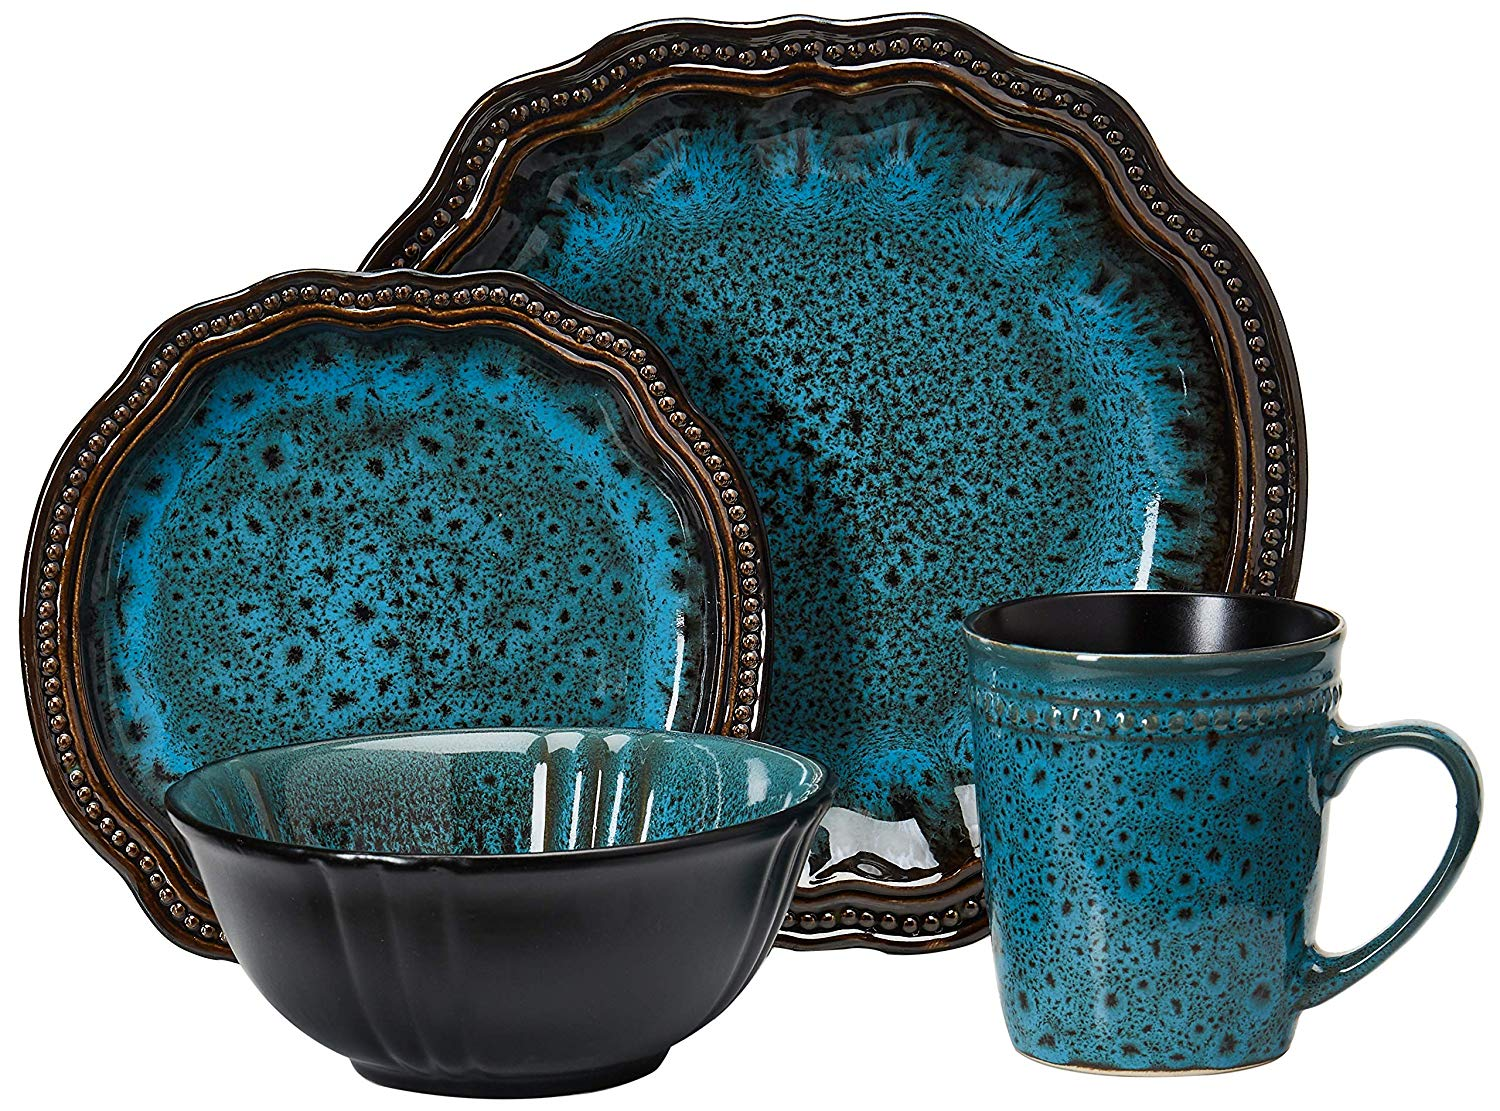 Elama Mystic Waves Round Oval Stoneware Fine Dining Dinnerware Dish Set 16 Piece Ocean Blue with Brown Accents